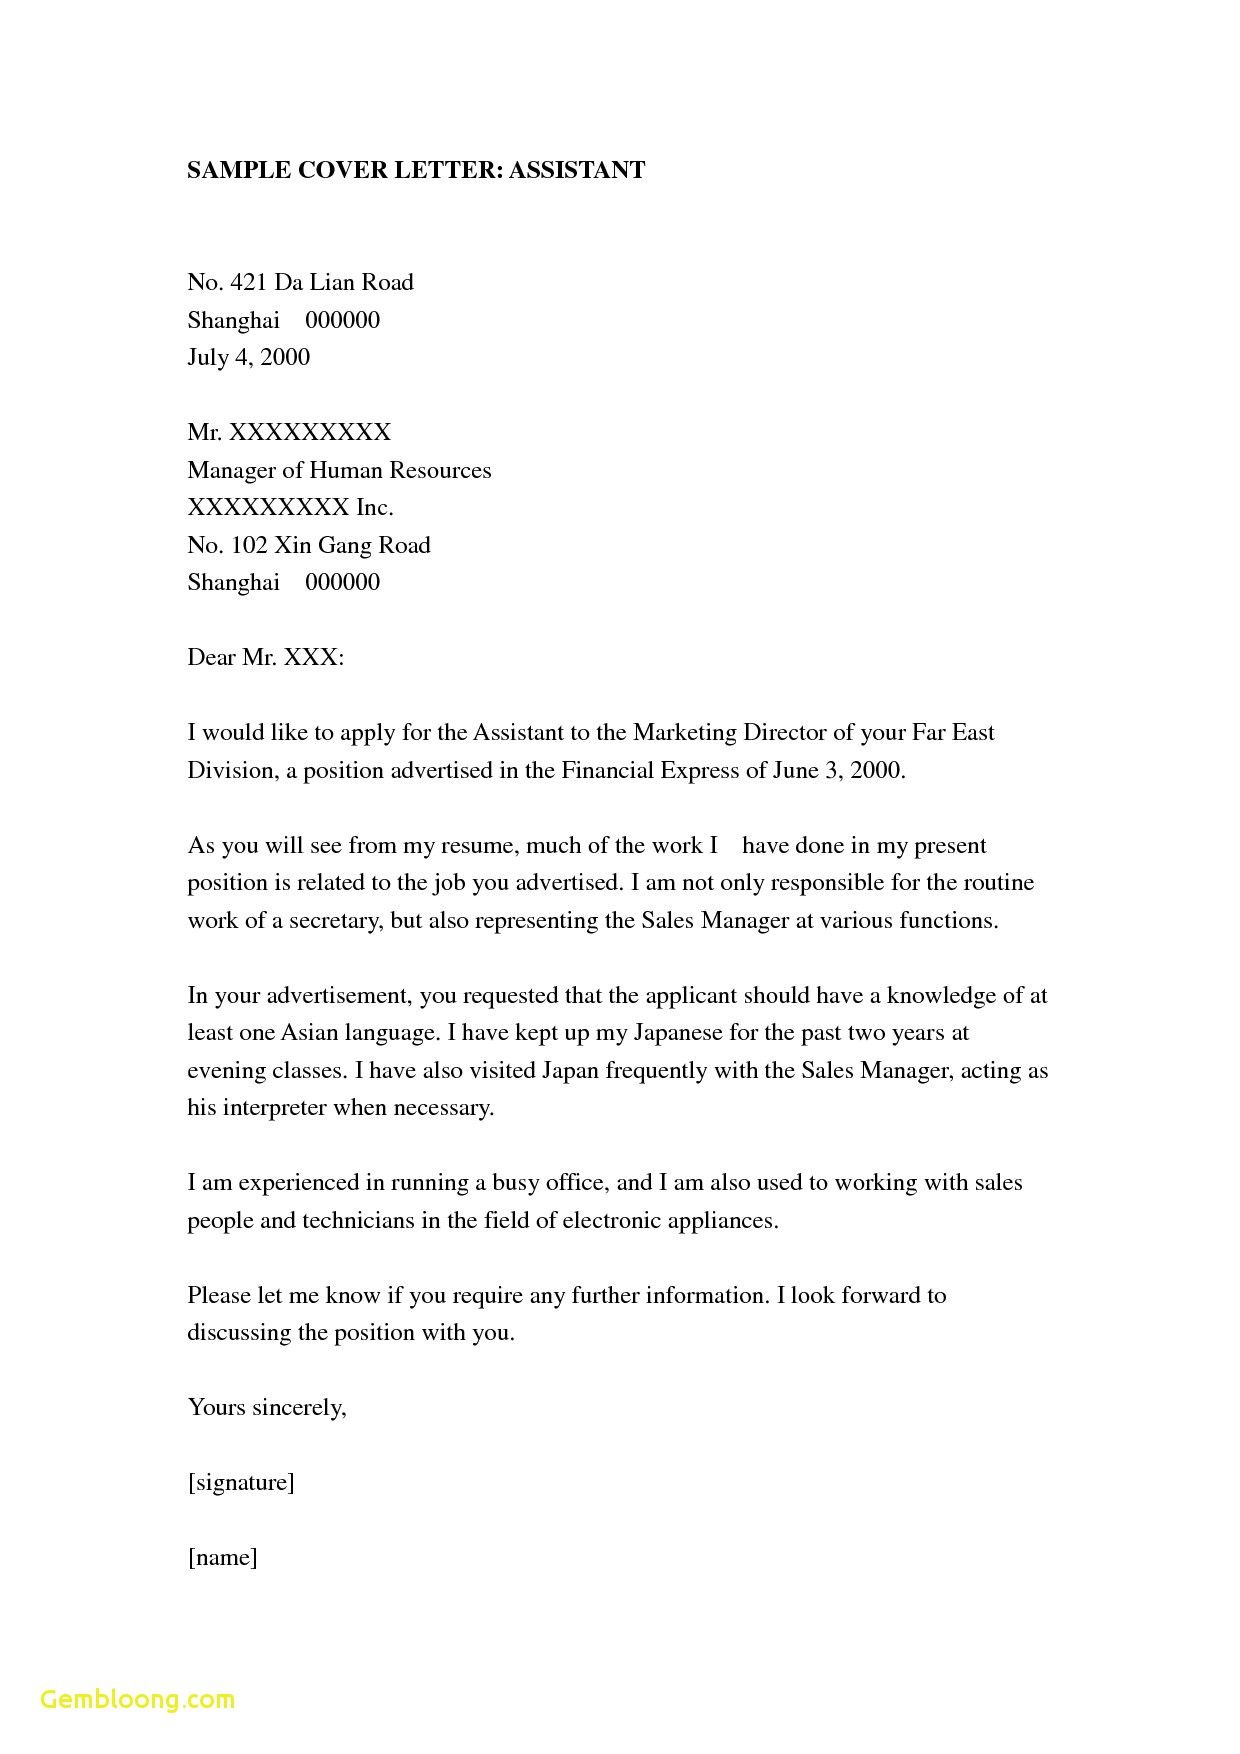 23 Teaching Assistant Cover Letter In